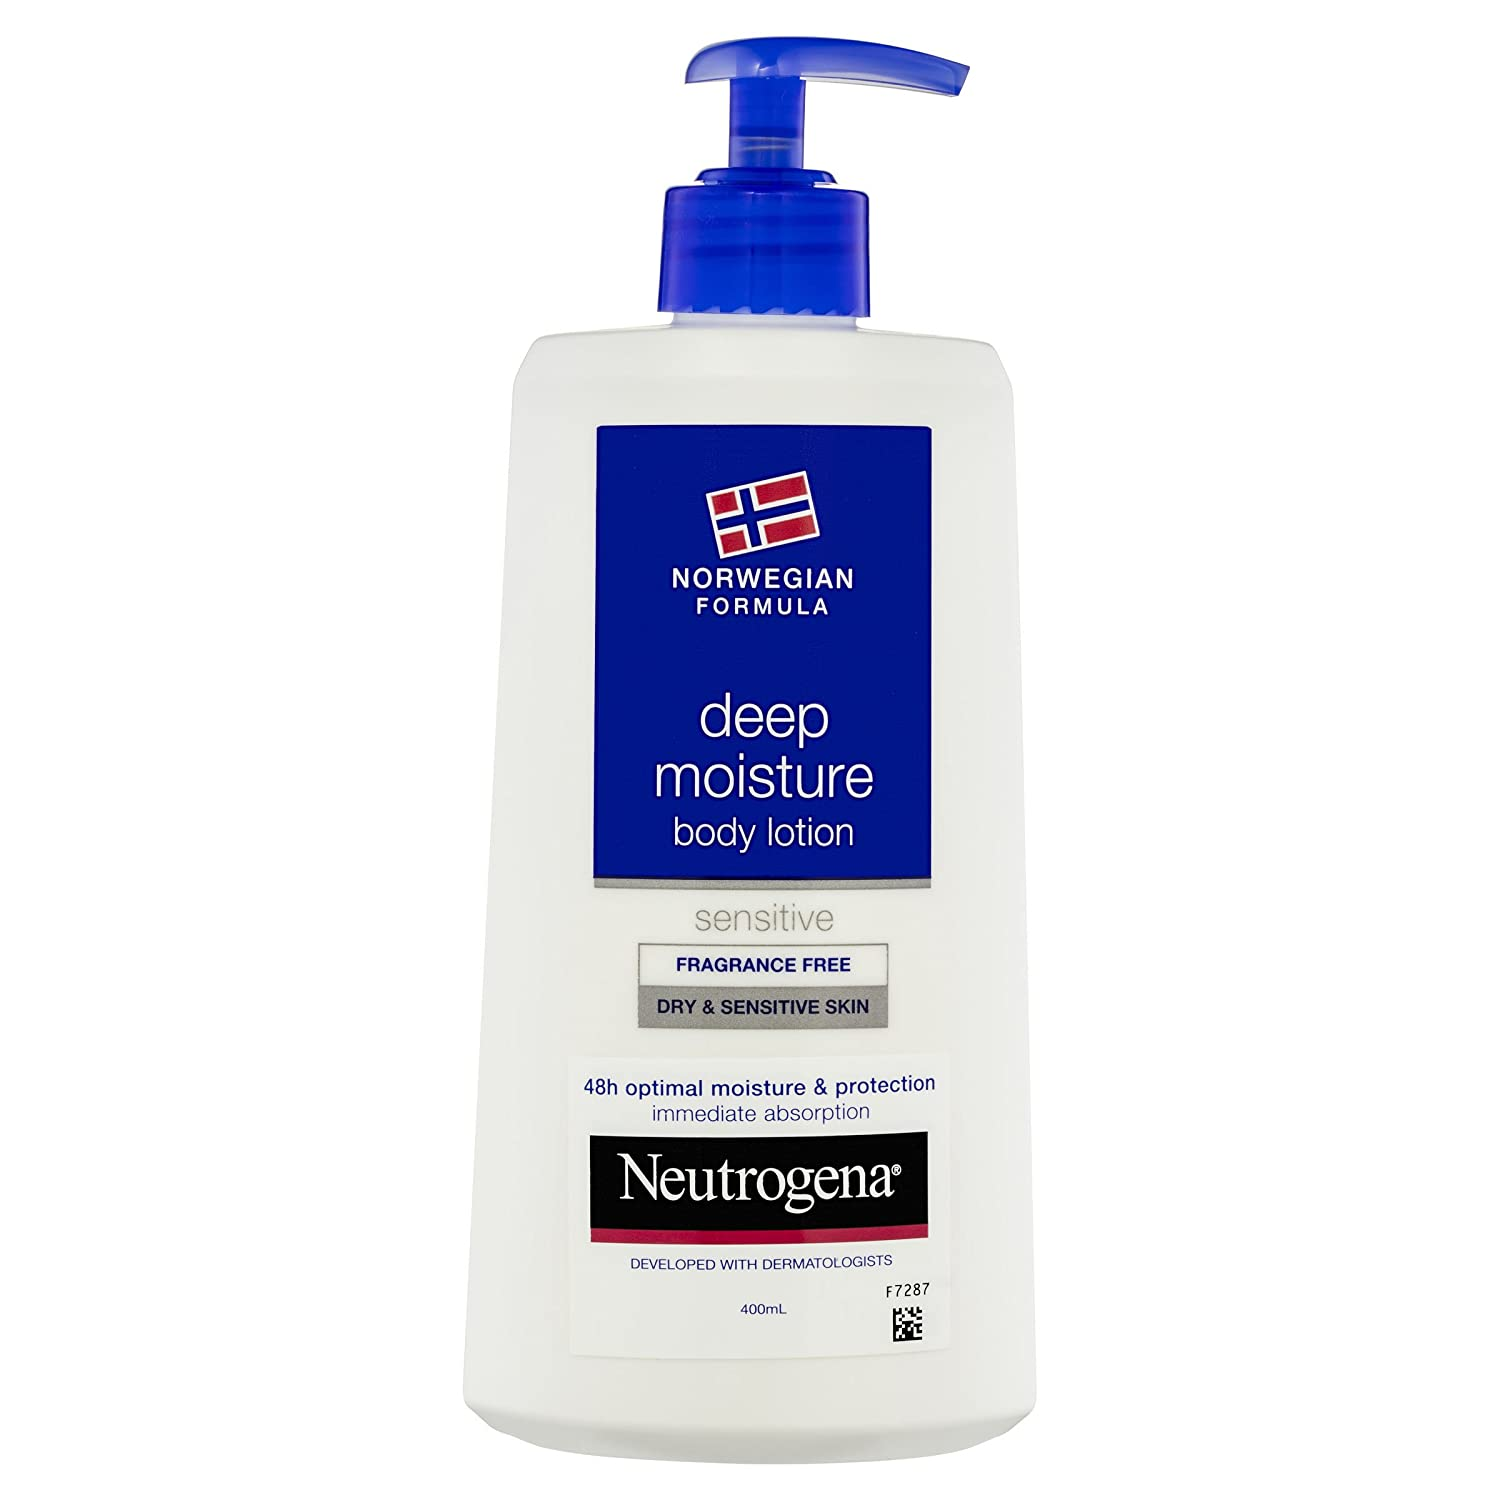 Neutrogena Deep Moisture Body lotion Sensitive and Fragrance Free for Dry and Sensitive Skin, 13.5 Ounce